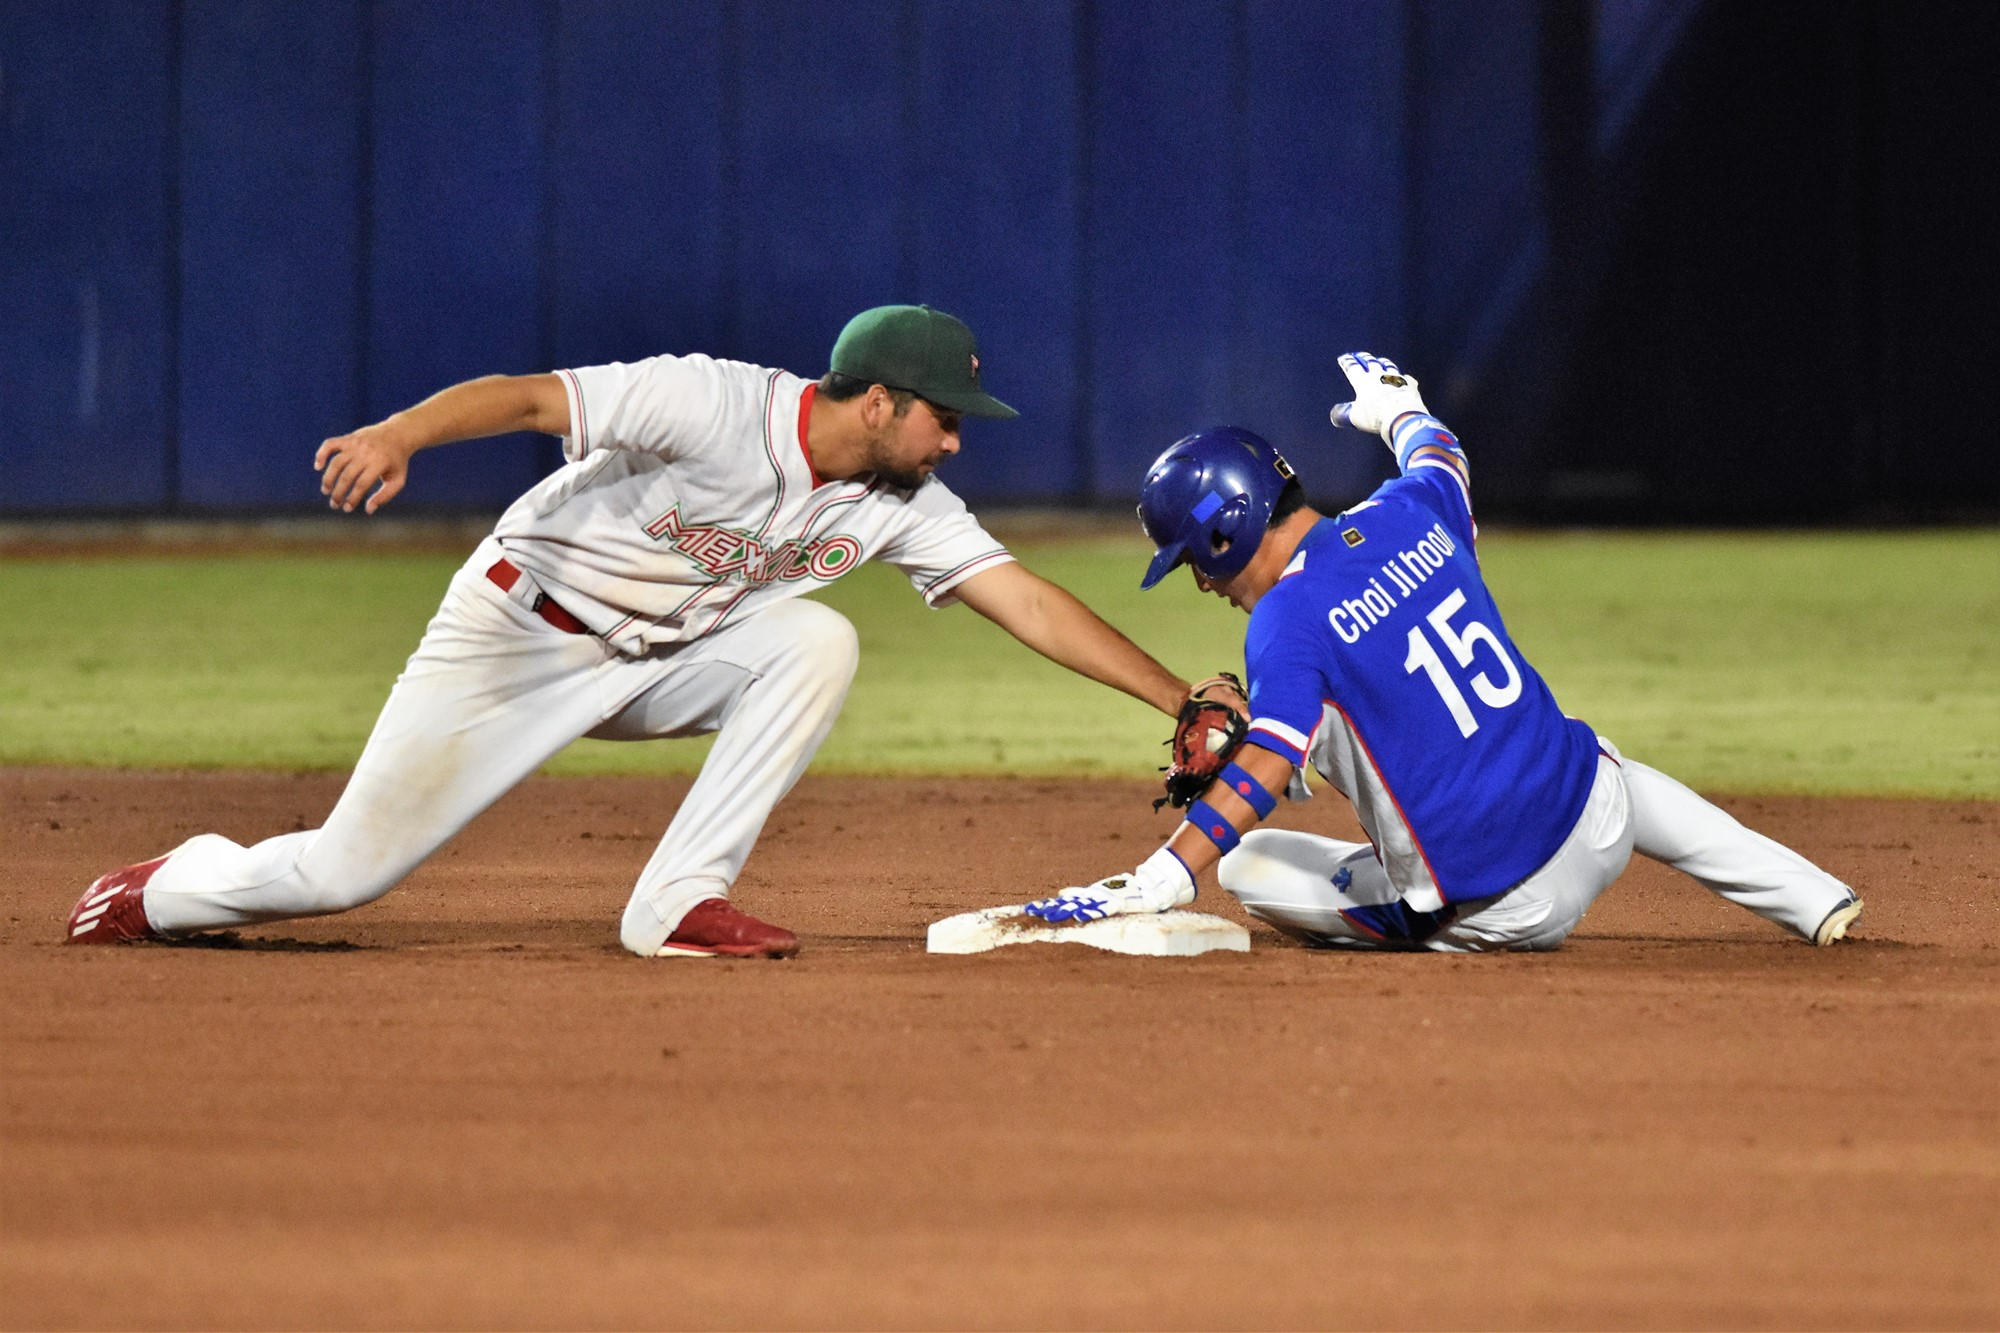 Mexico's Roberto Valenzuela defends second on a slide by Choi Ji Hoon